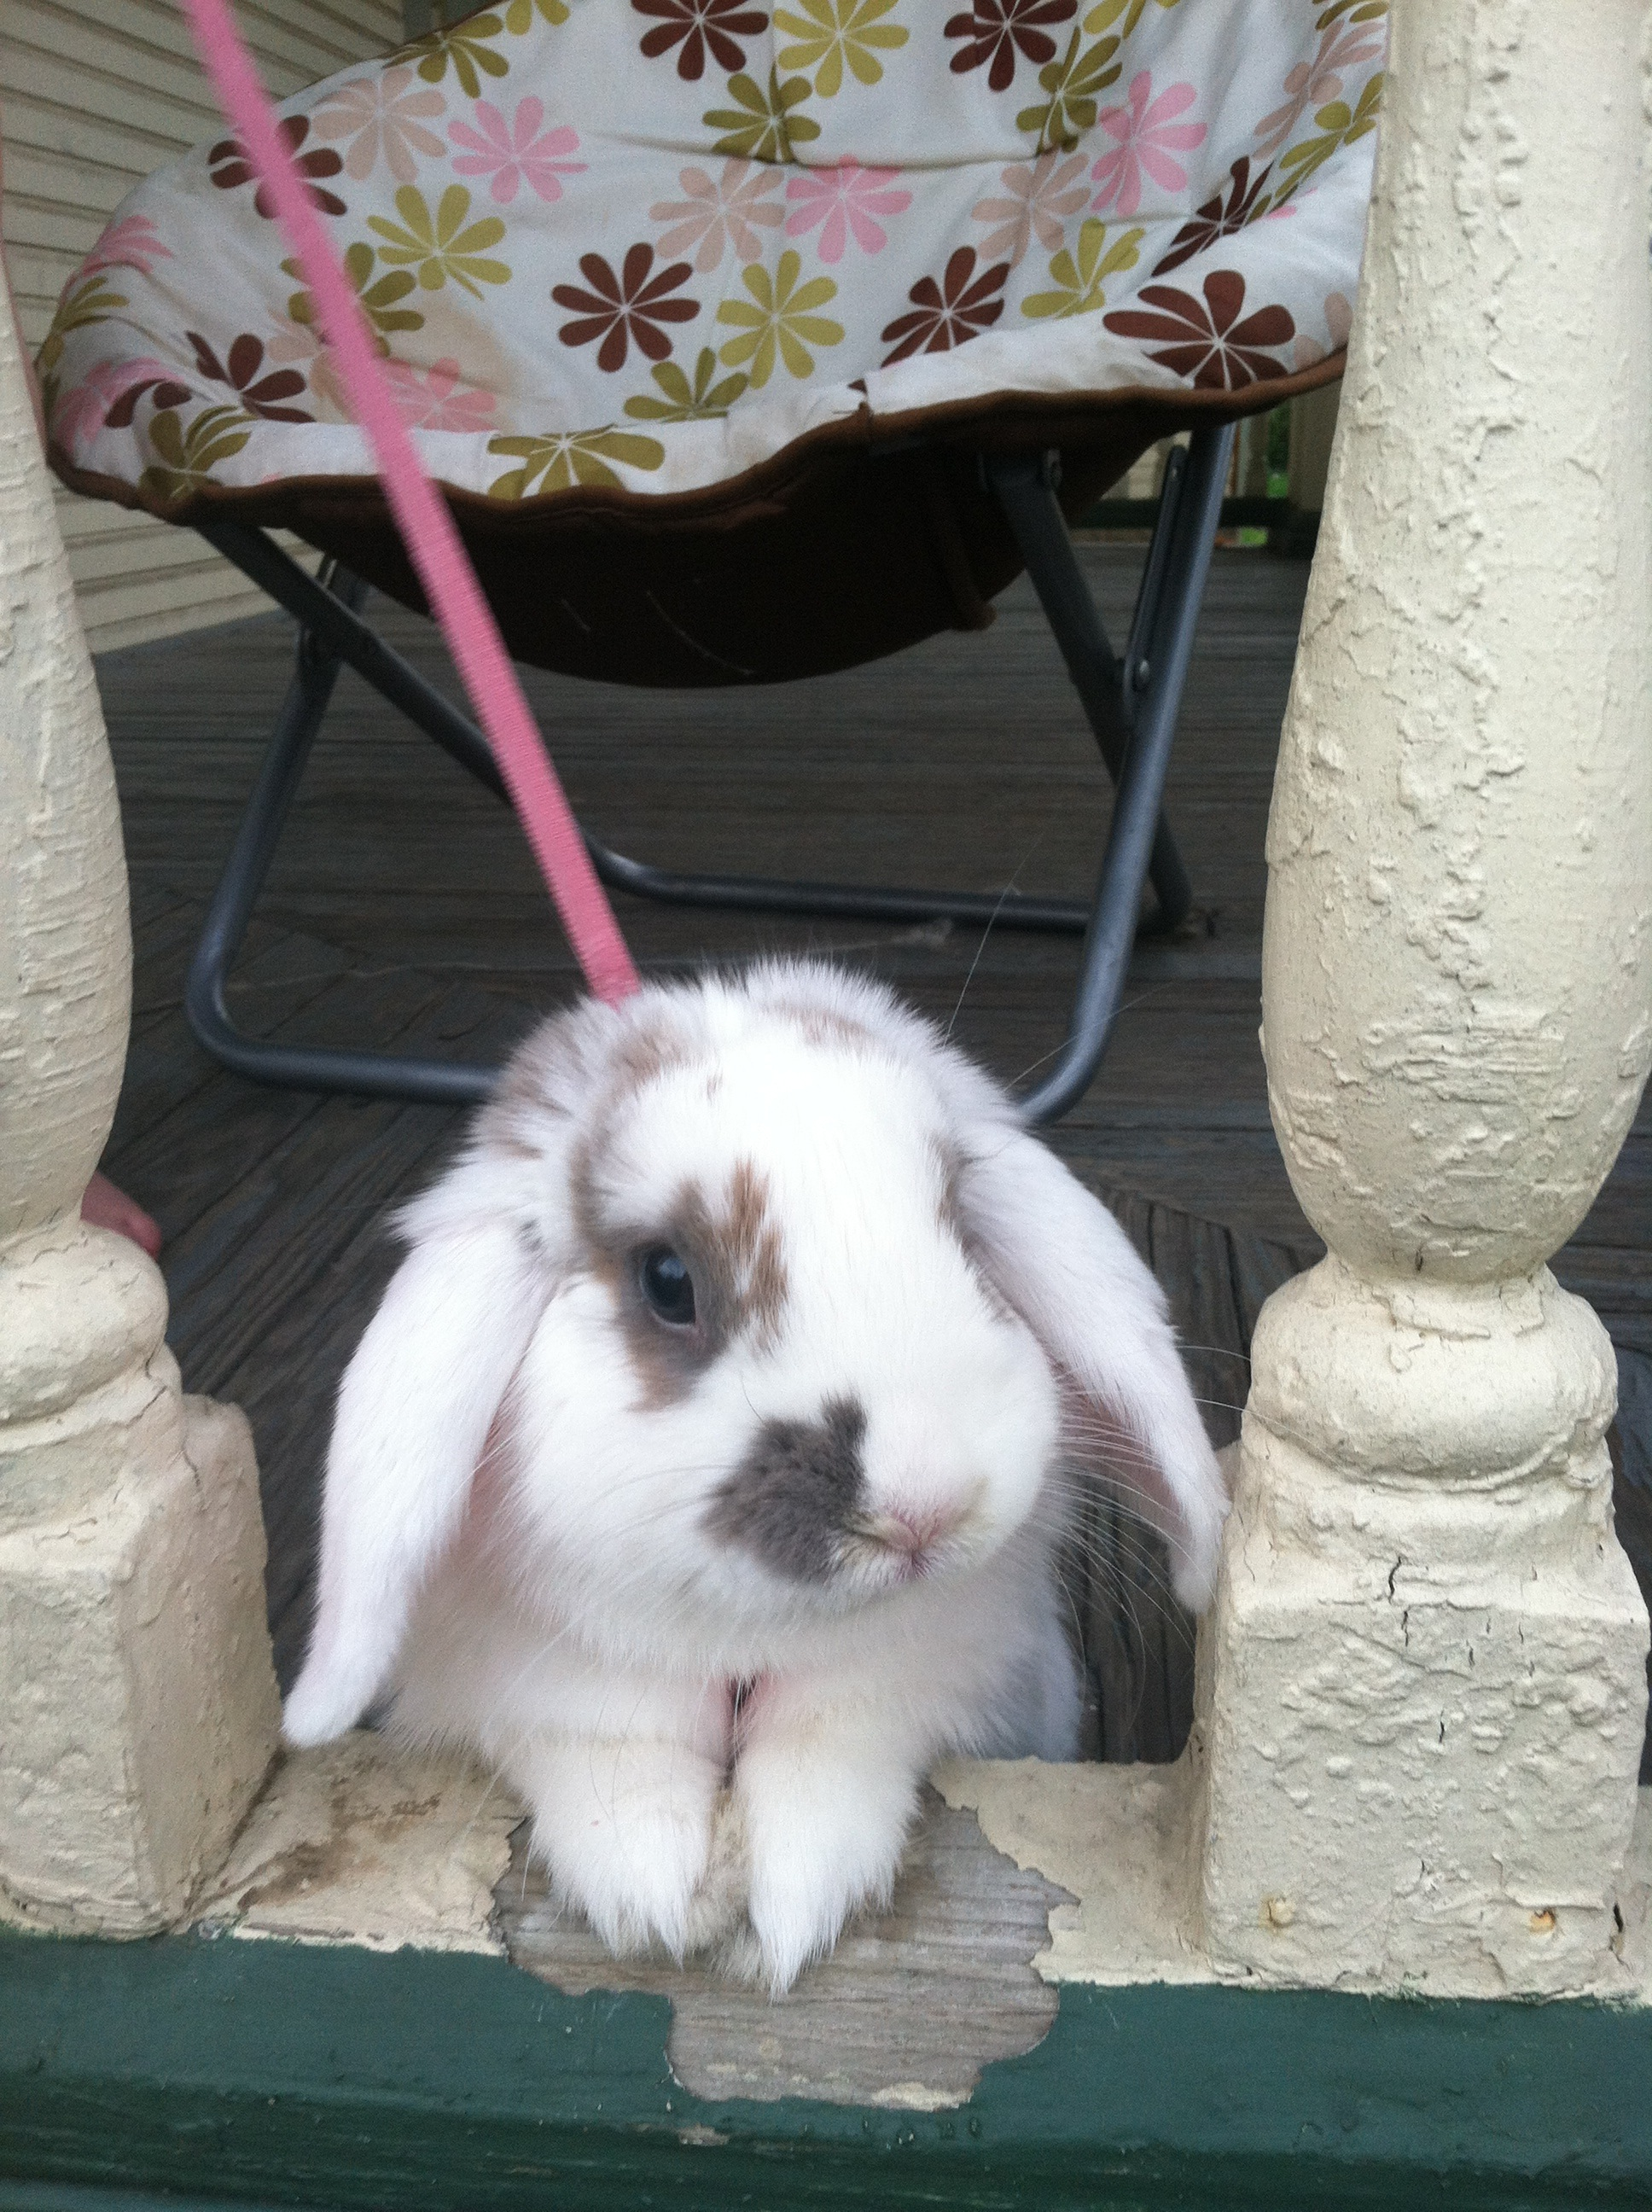 Bunny Looks Out at the Big, Wide World from Her Porch